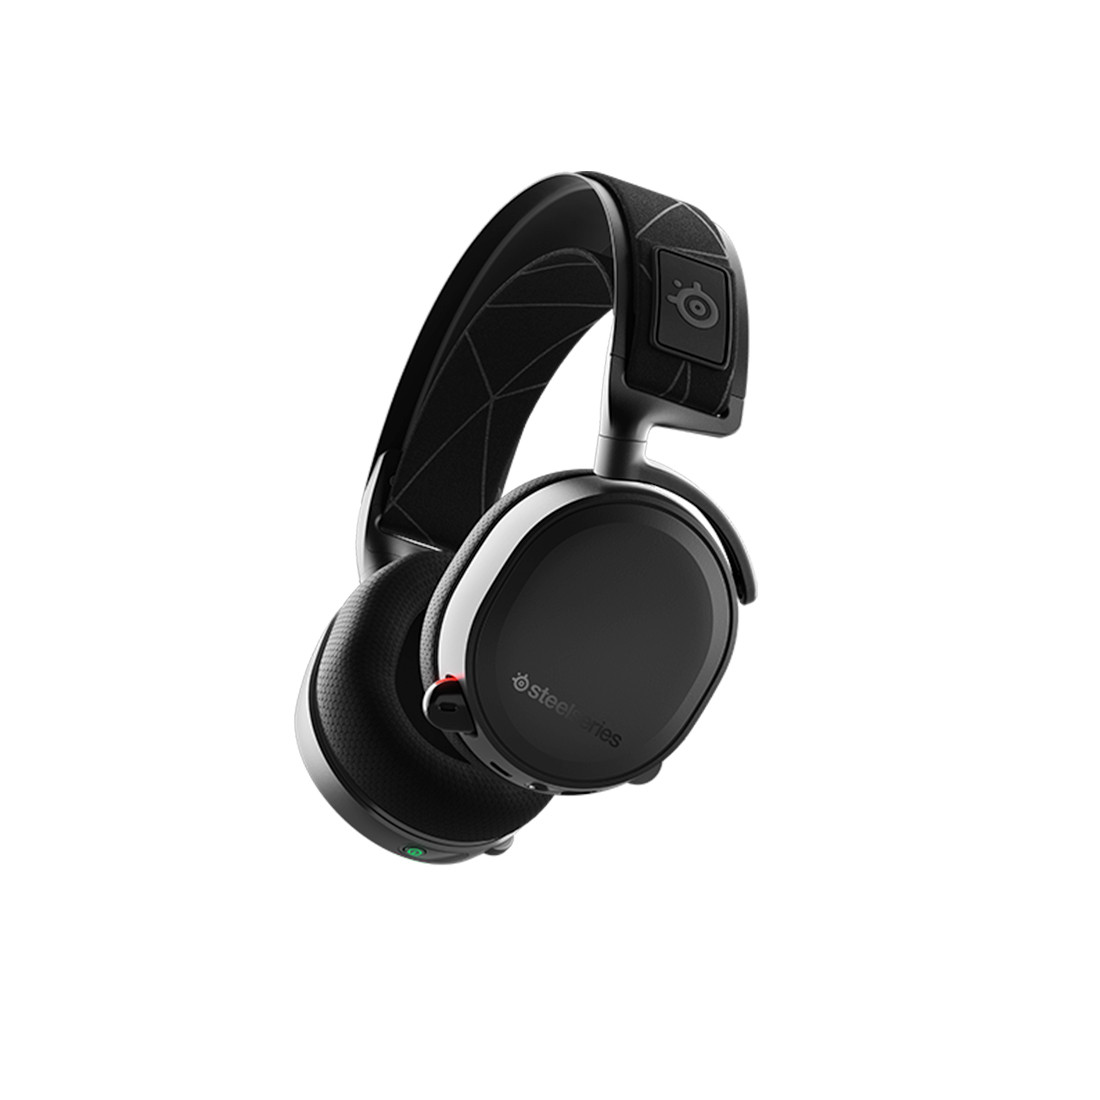 Гарнитура Steelseries Arctis 7 61505 (Black, 2019 Edition)